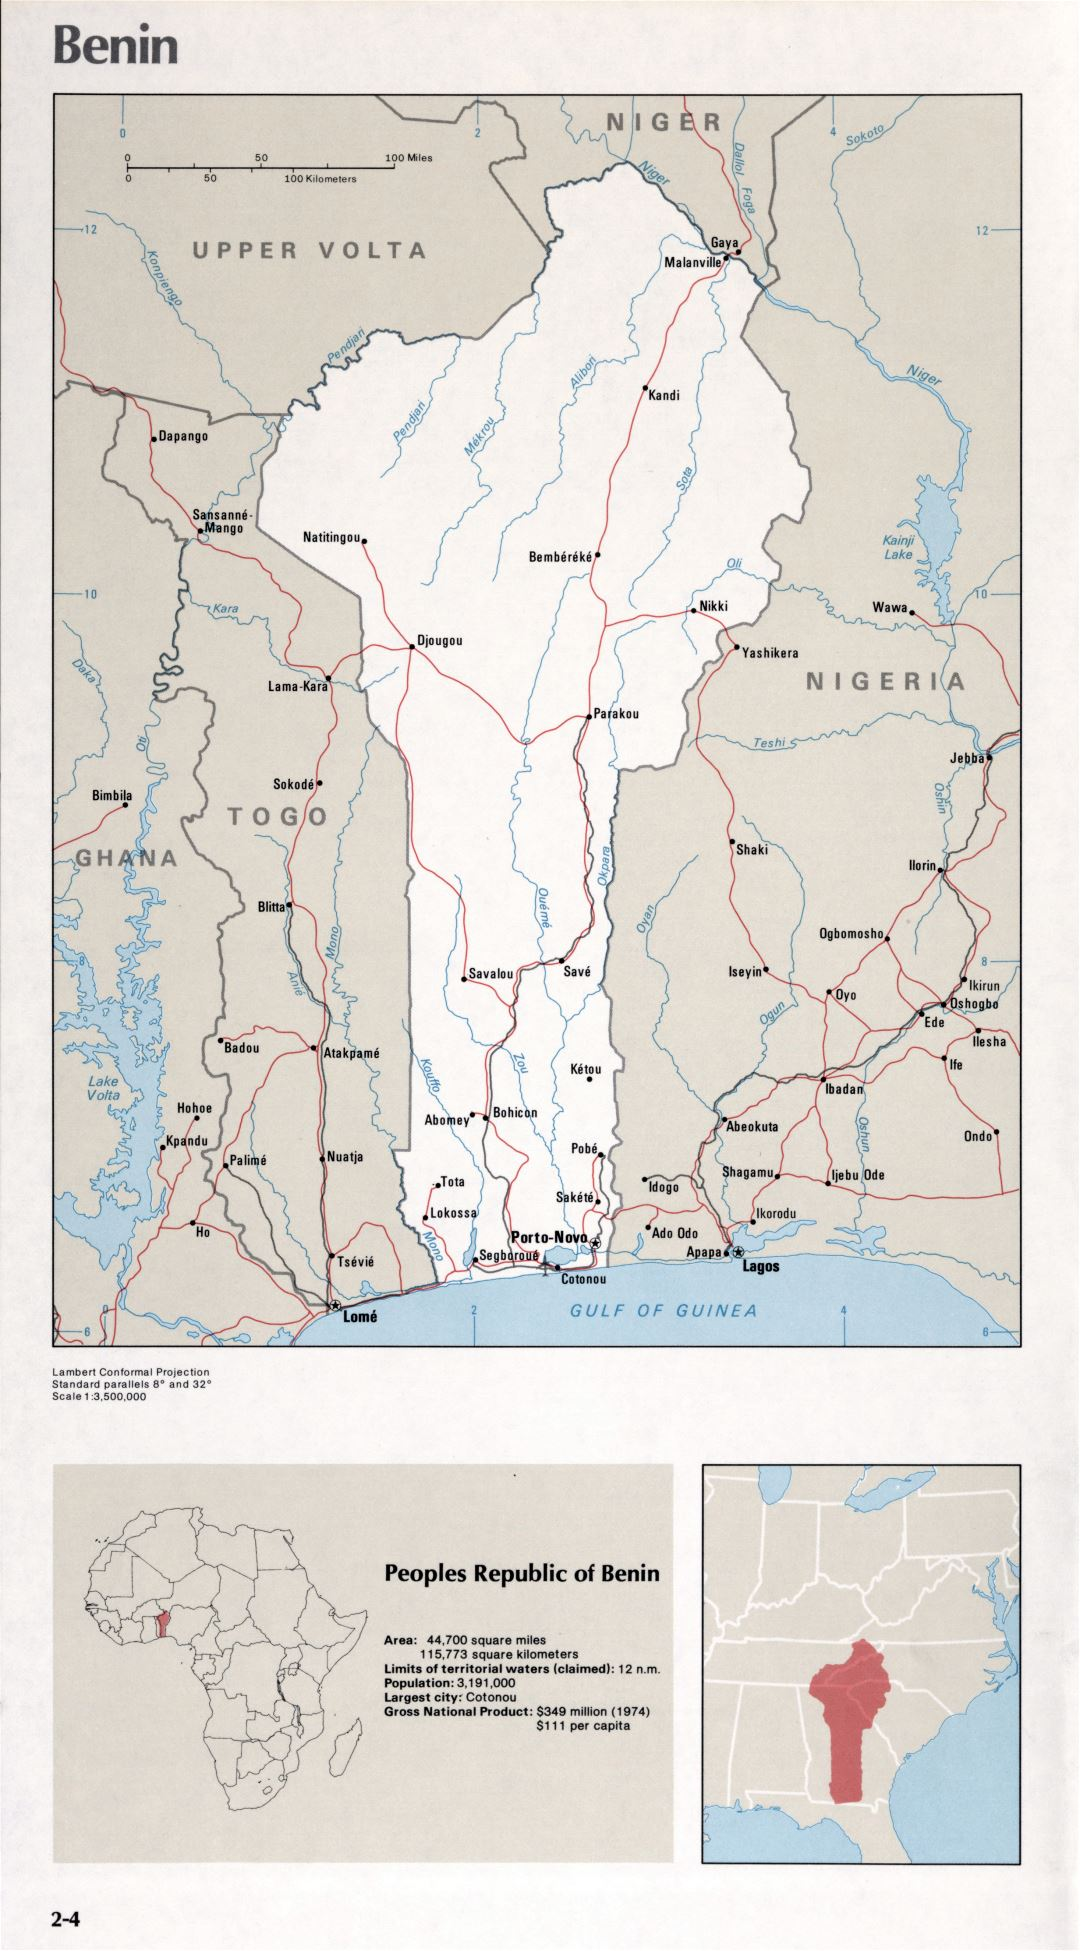 Map of Benin (2-4)